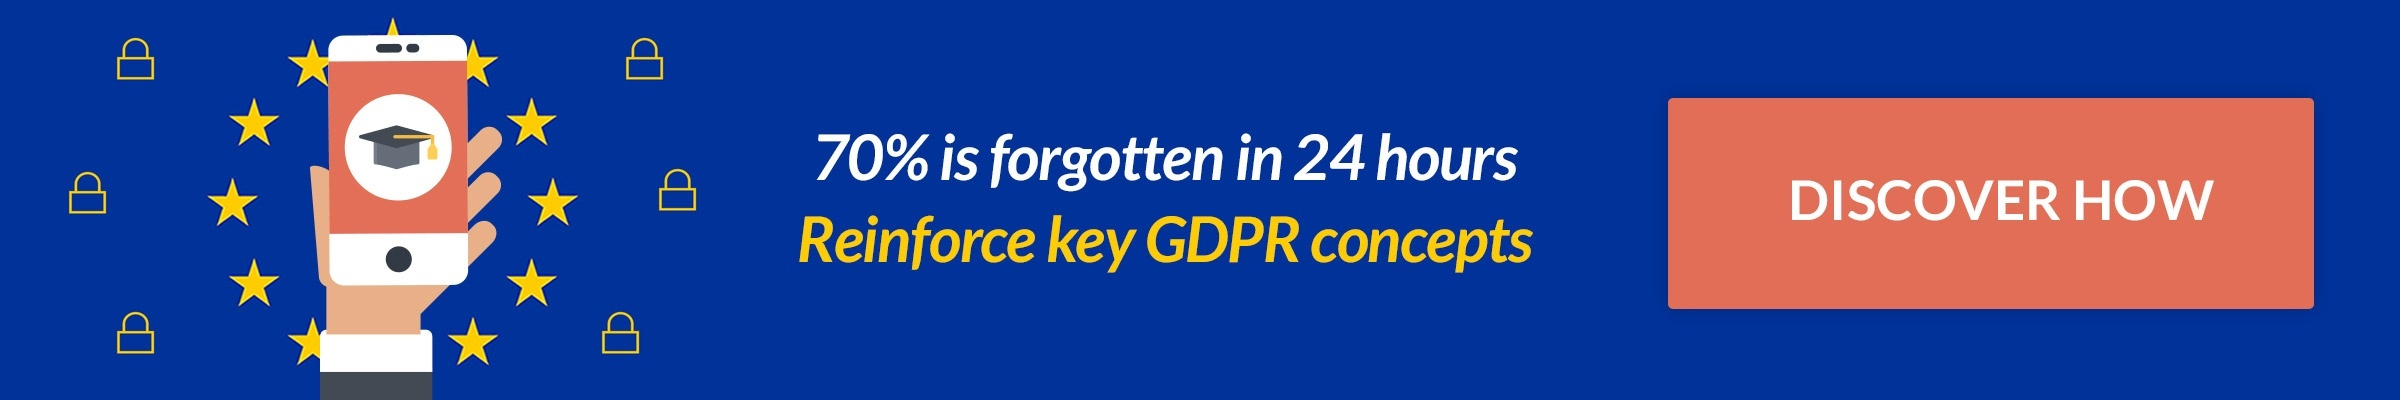 GDPR mid-content discover Atrivity